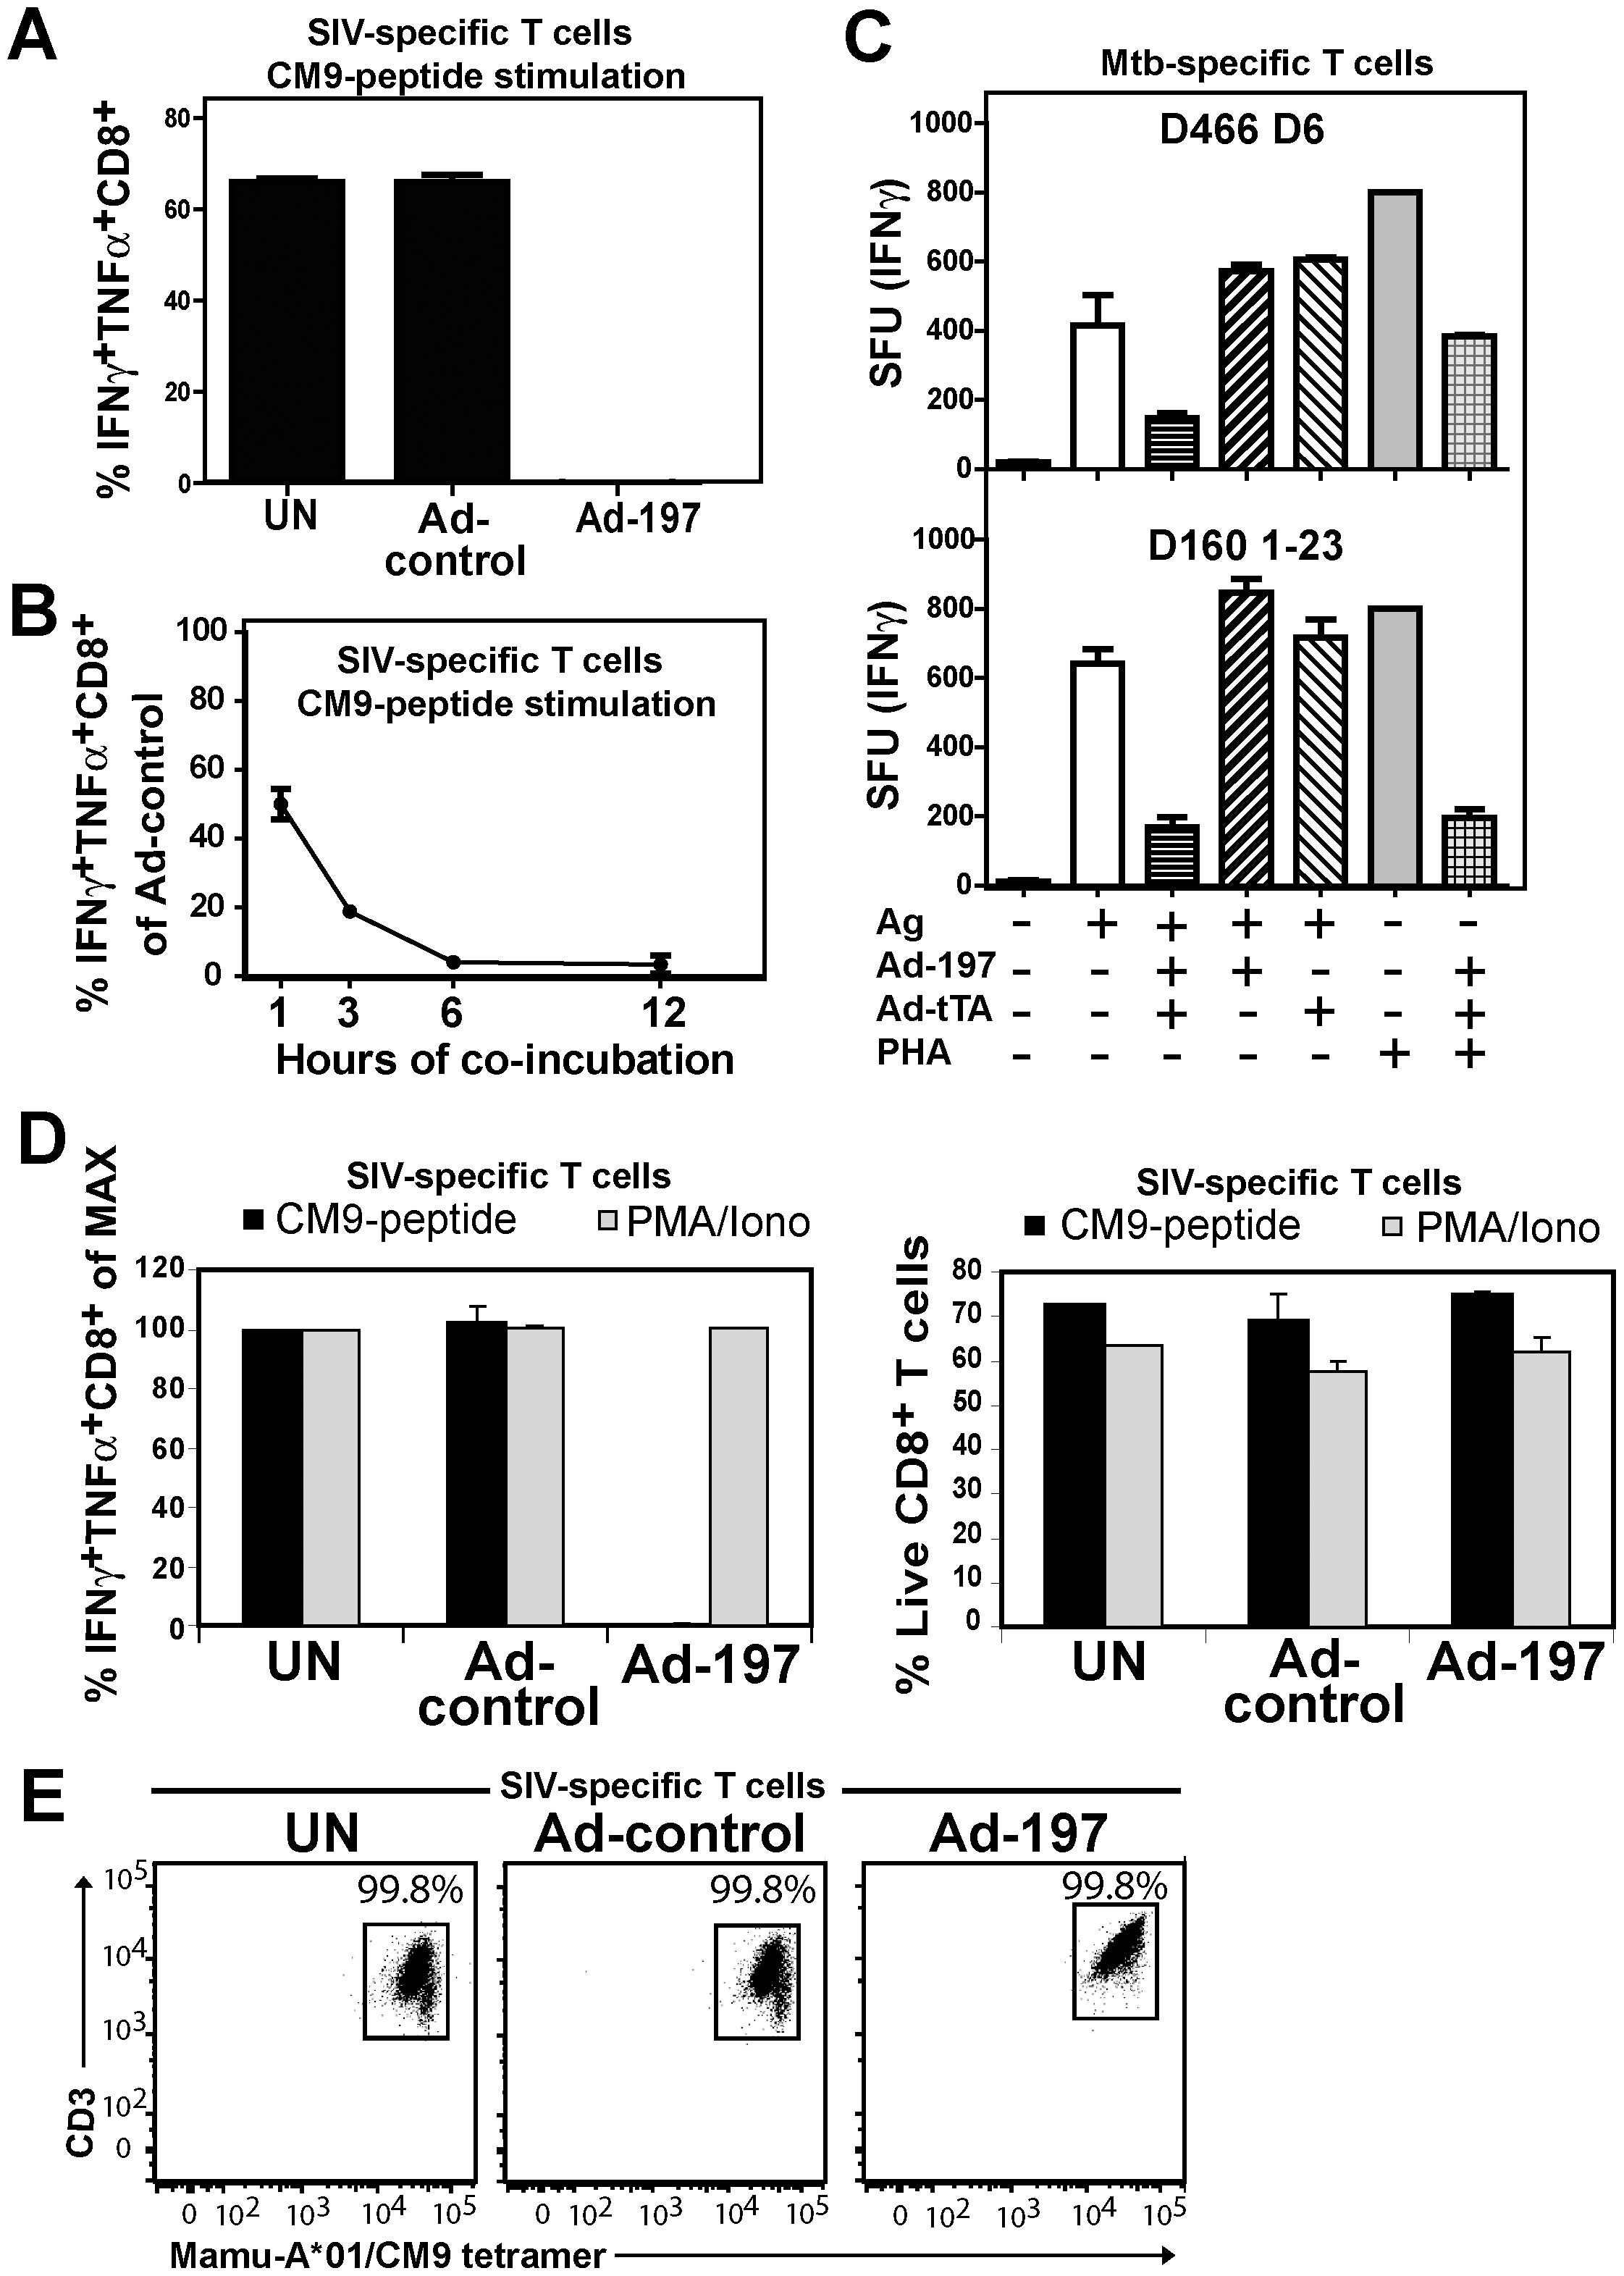 MPXV197 inhibits TCR-dependent T cell stimulation.